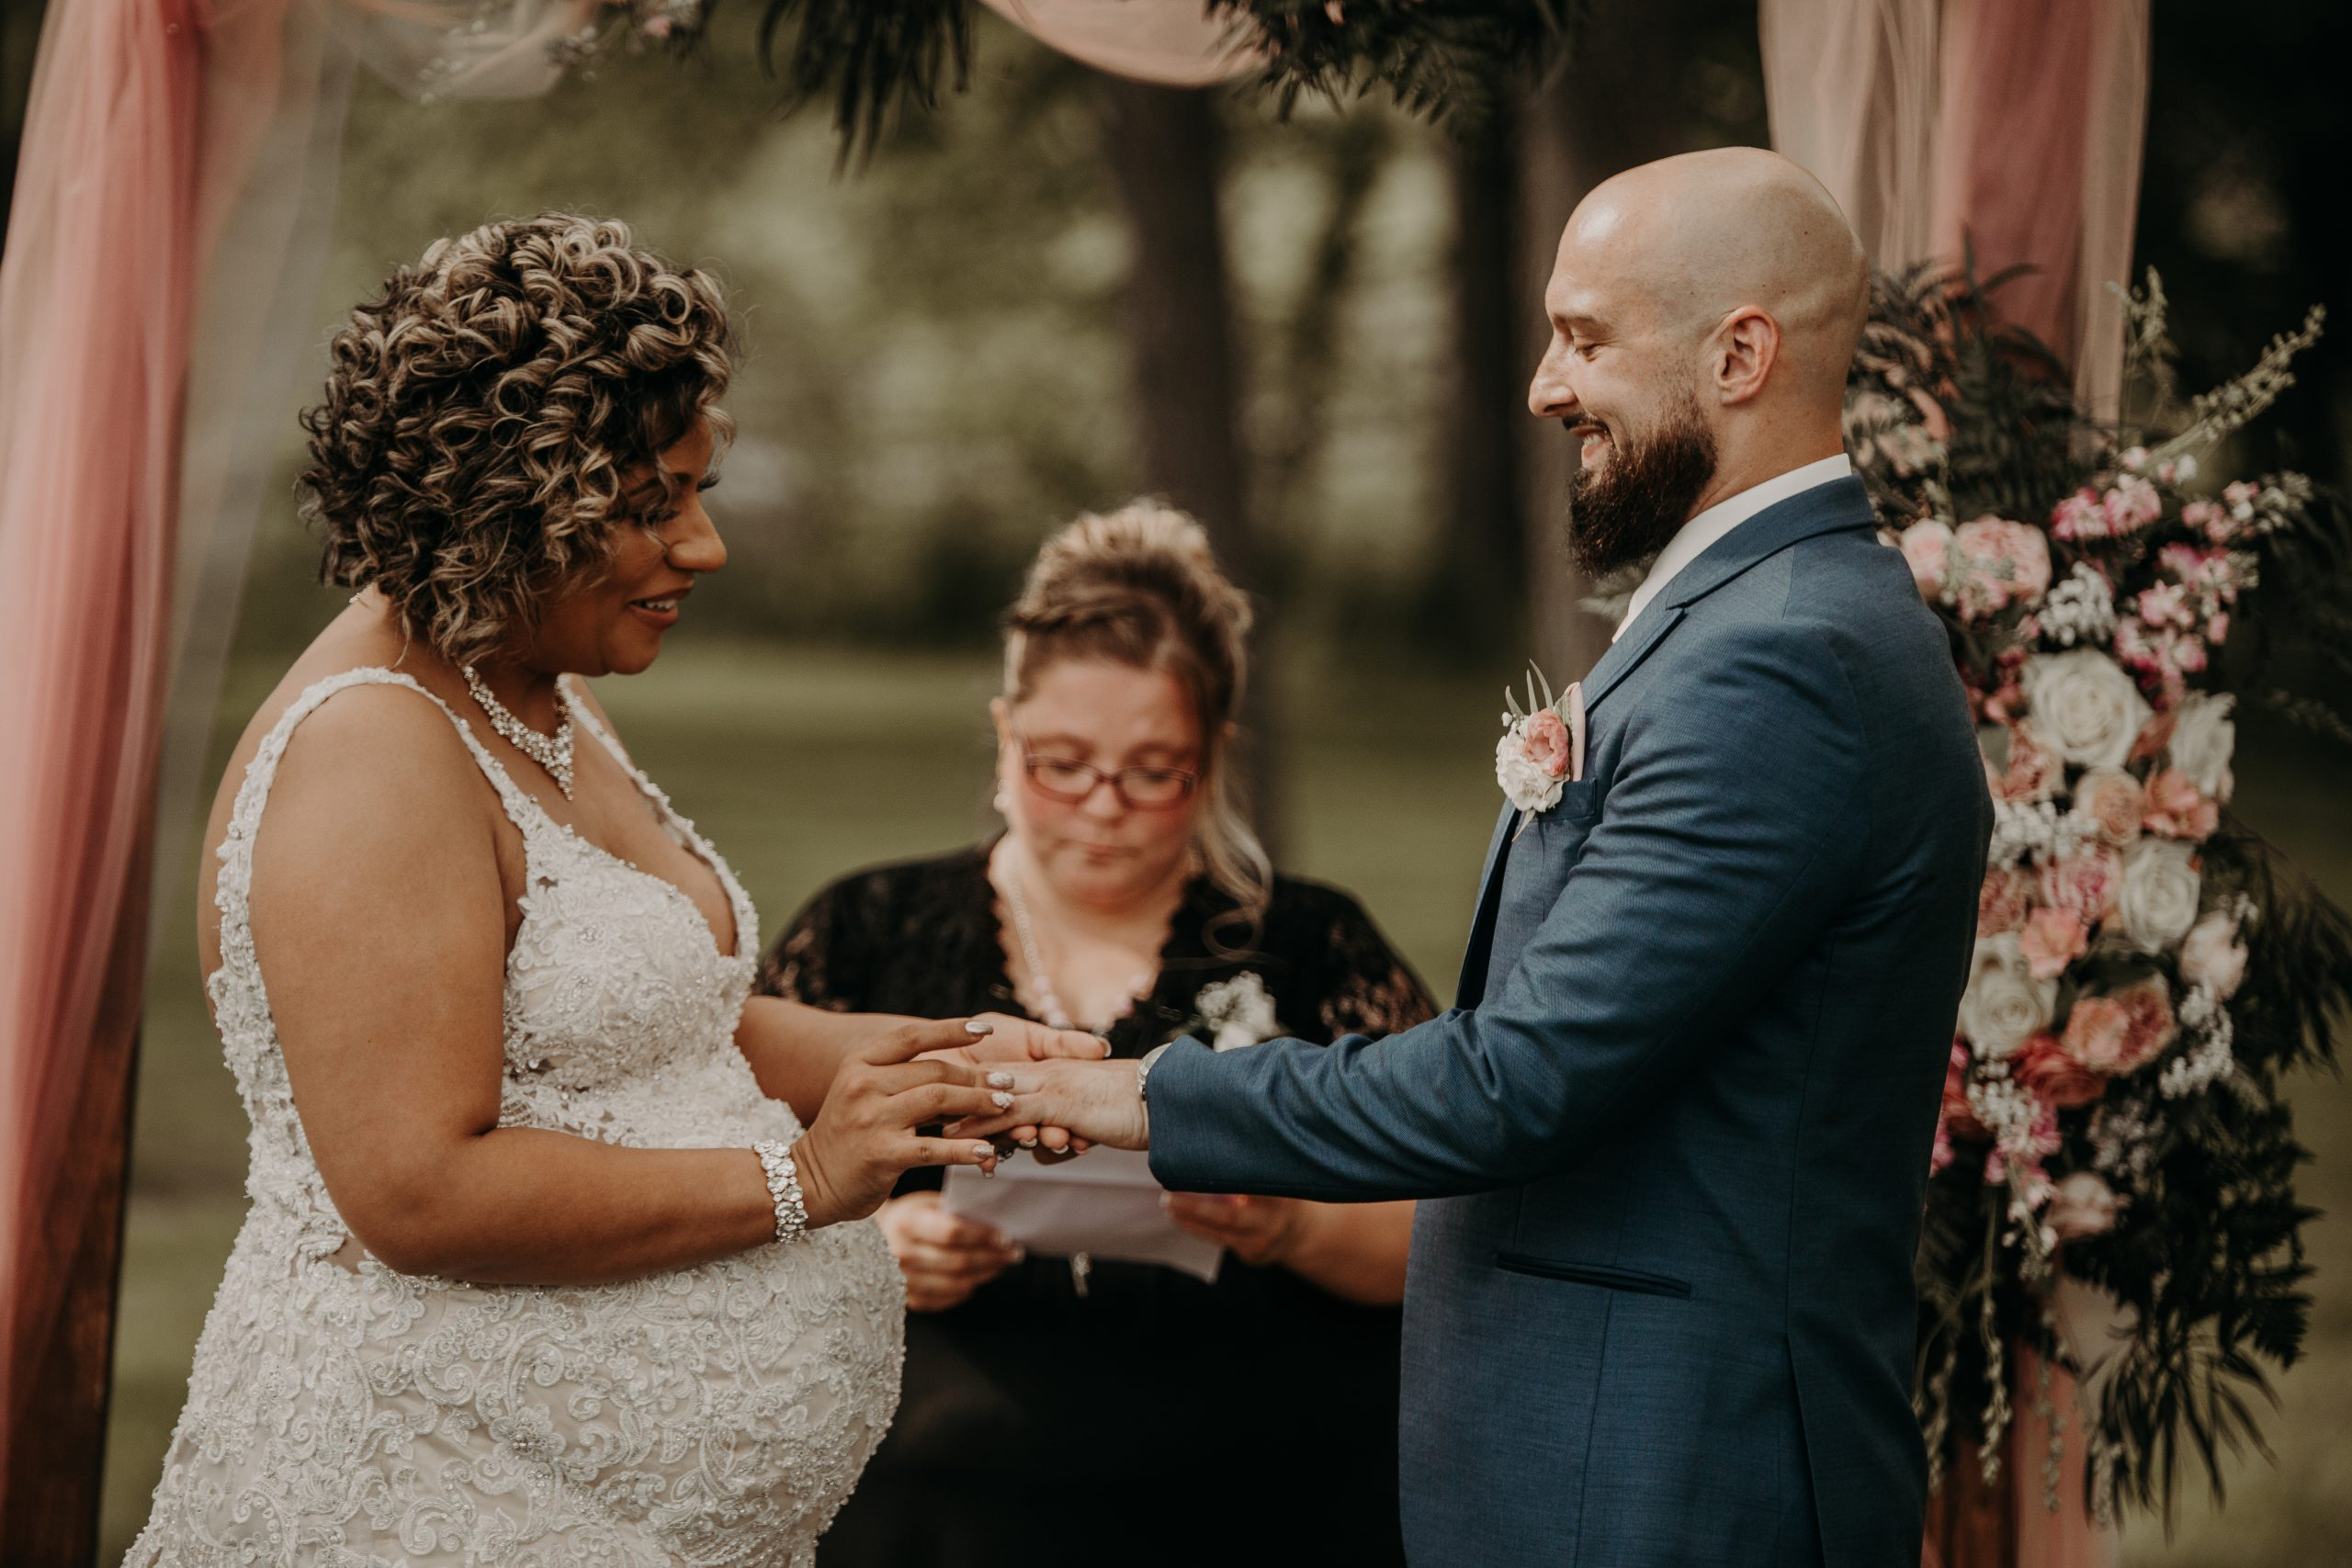 the exchange of wedding rings makes it official. Christine and Richard wed on the Chestnut Hill Villa grounds on May of 2019. This organic ethereal styled wedding was captured by Garnet Dahlia Photography and featured on Dream Weddings.